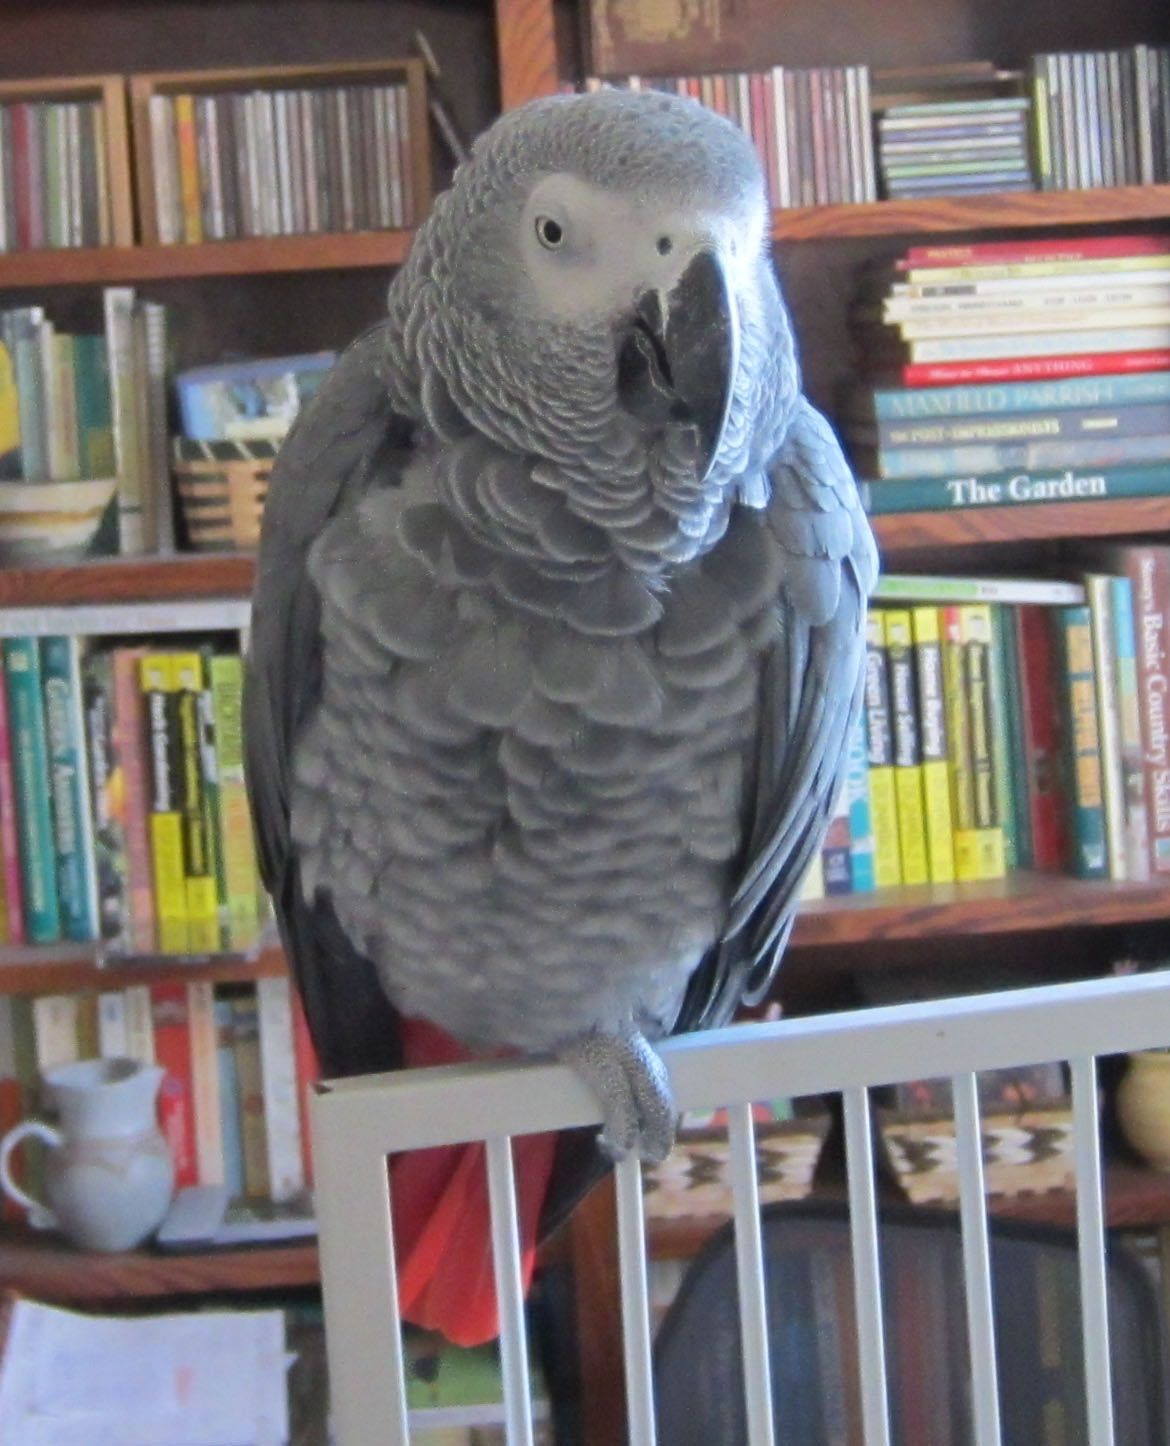 Pharaoh Is A Gorgeous African Grey From Mickaboo Companion Bird Rescue Pharaoh Is Currently At A Foster Home Where He Loves Spe African Grey Bird Foster Home